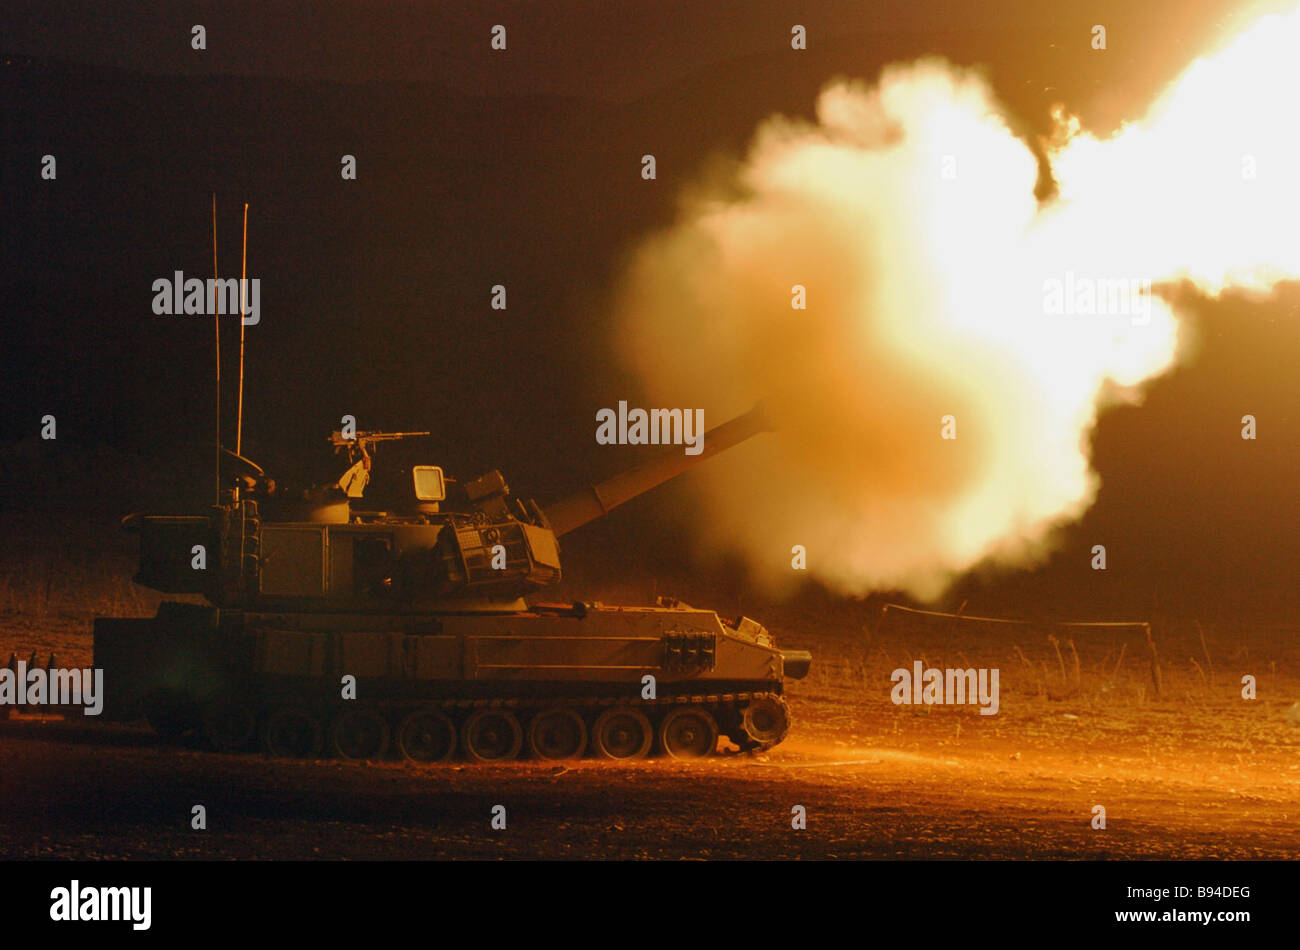 An M 109 self propelled howitzer in action - Stock Image